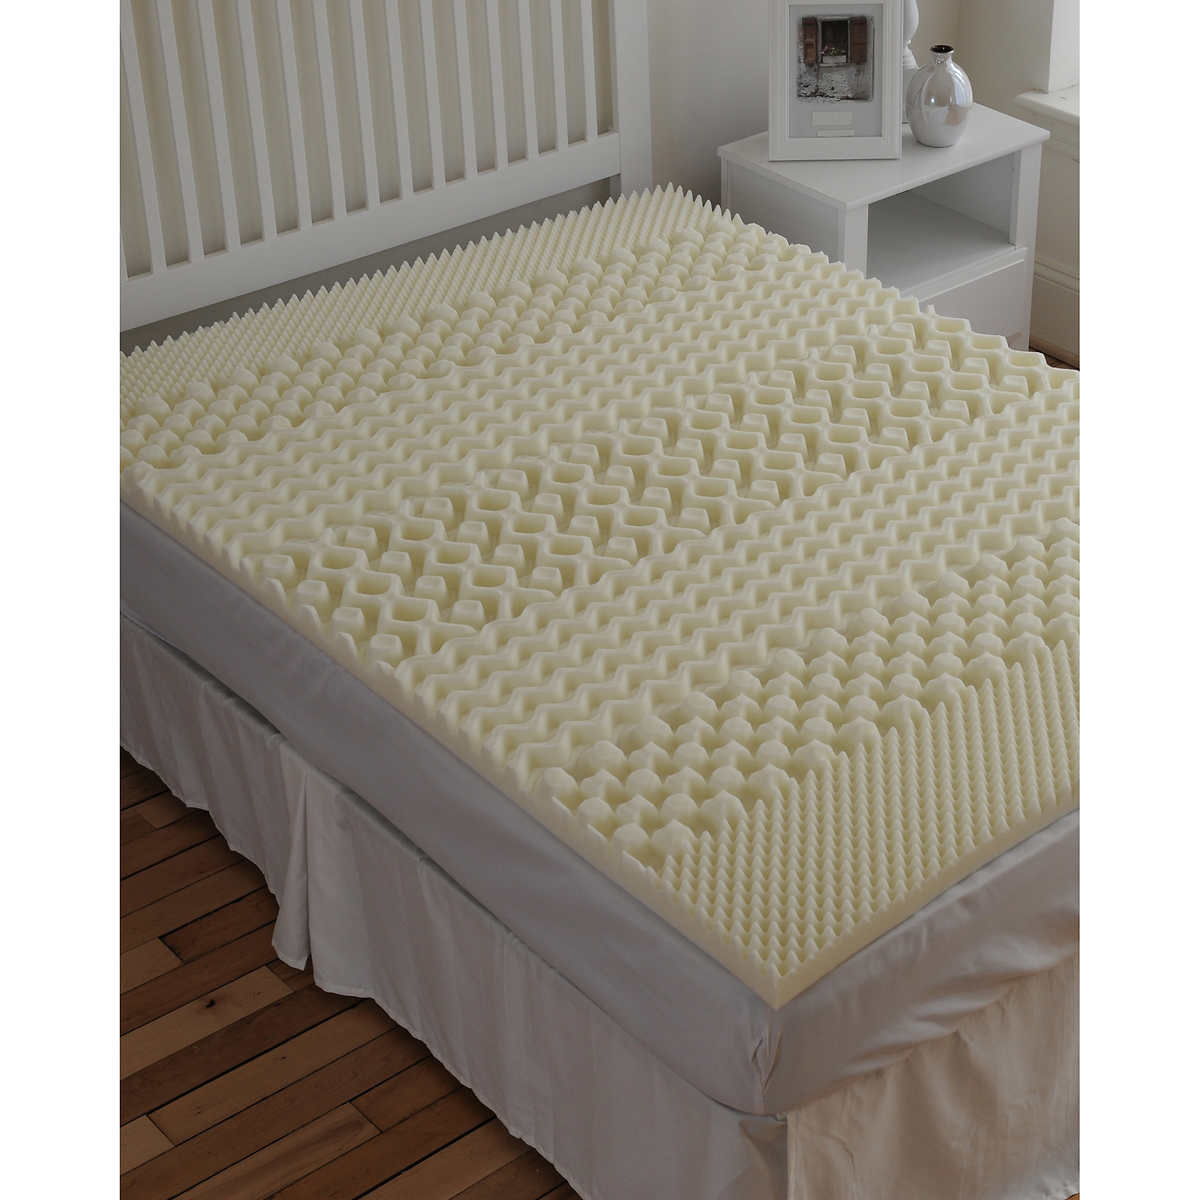 Sleepbetter Isotonic 7 Zone 2 Memory Foam Mattress Topper